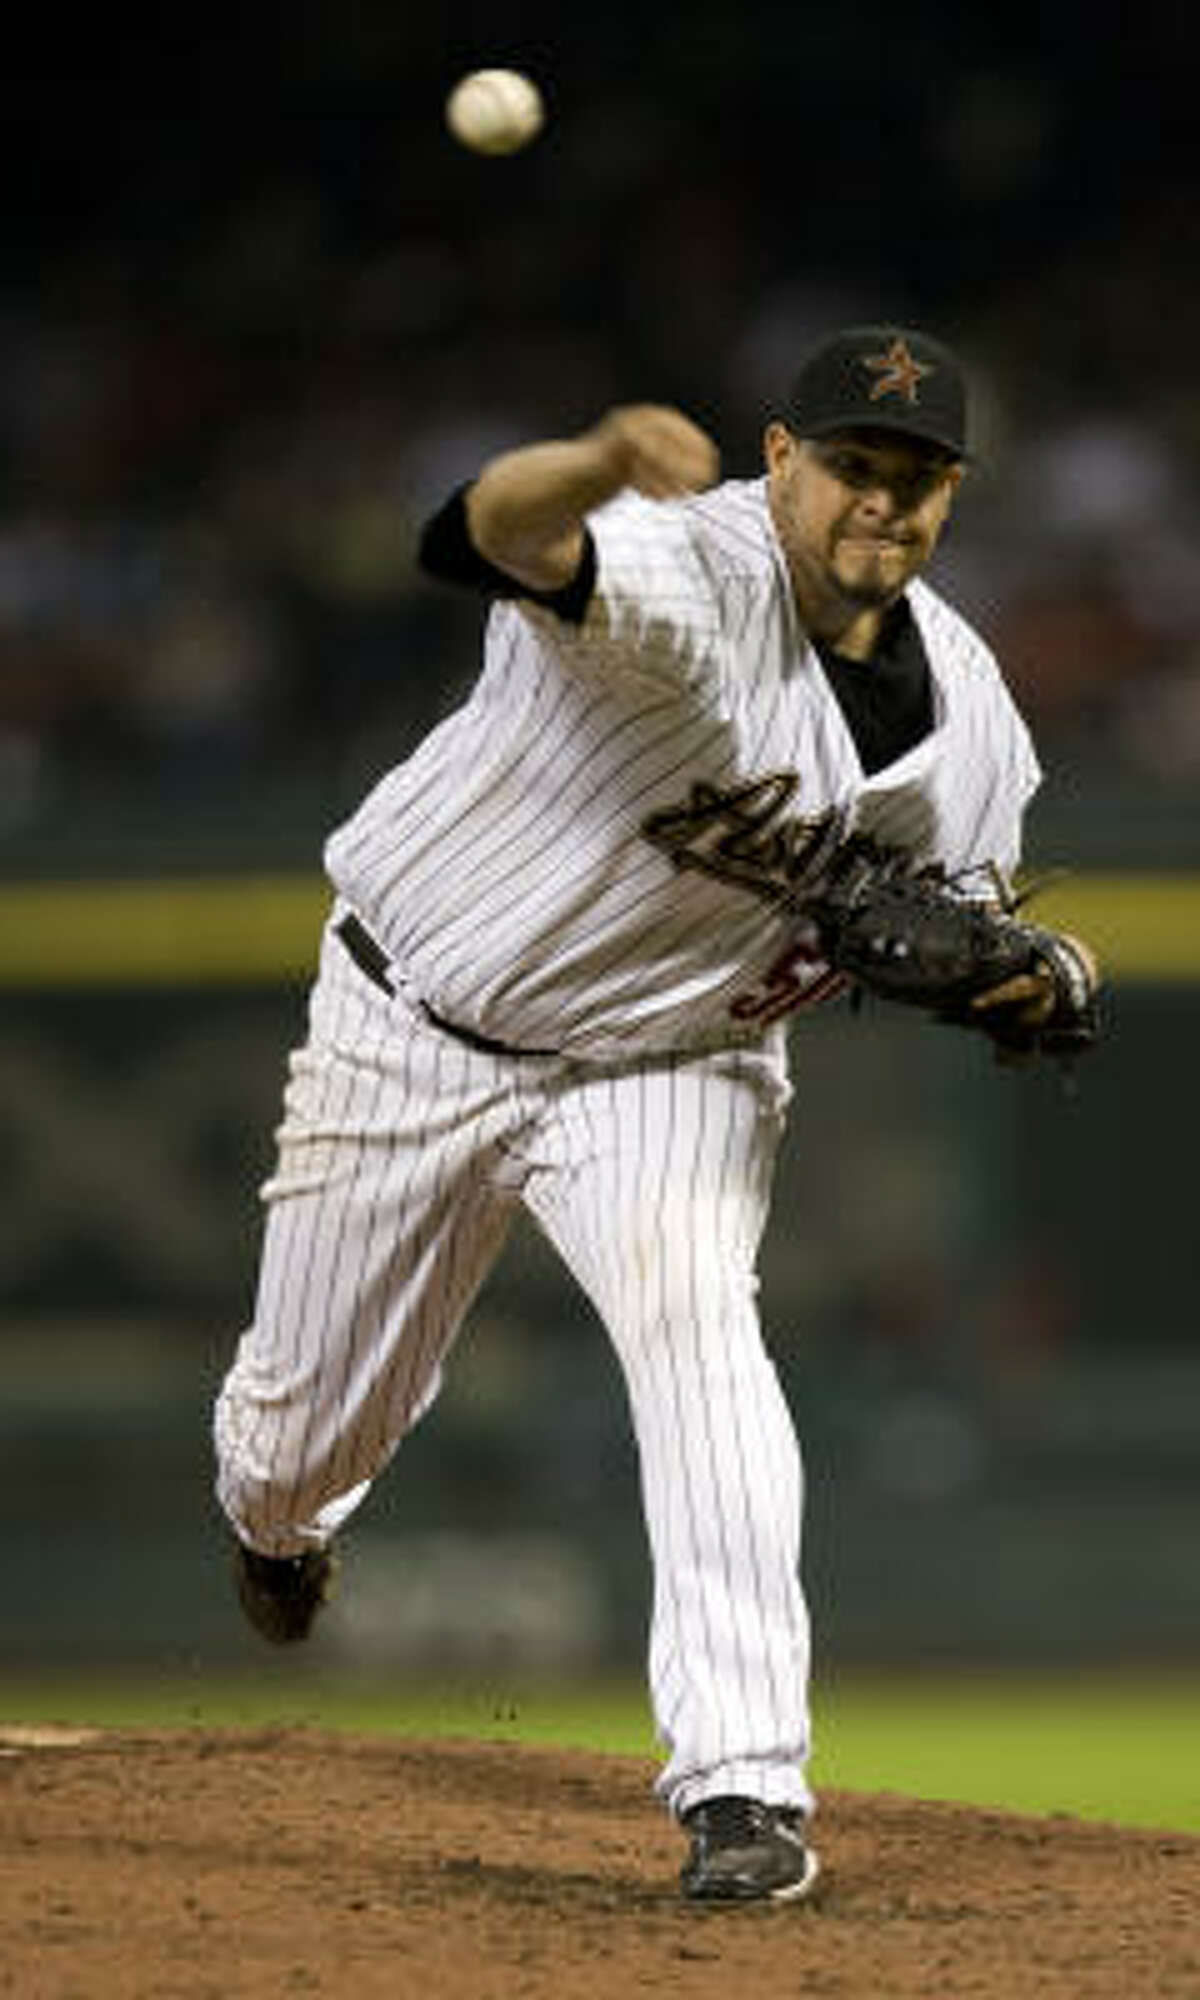 Runelvys Hernandez started four games for the Astros, going 0-3 with a 8.38 ERA.